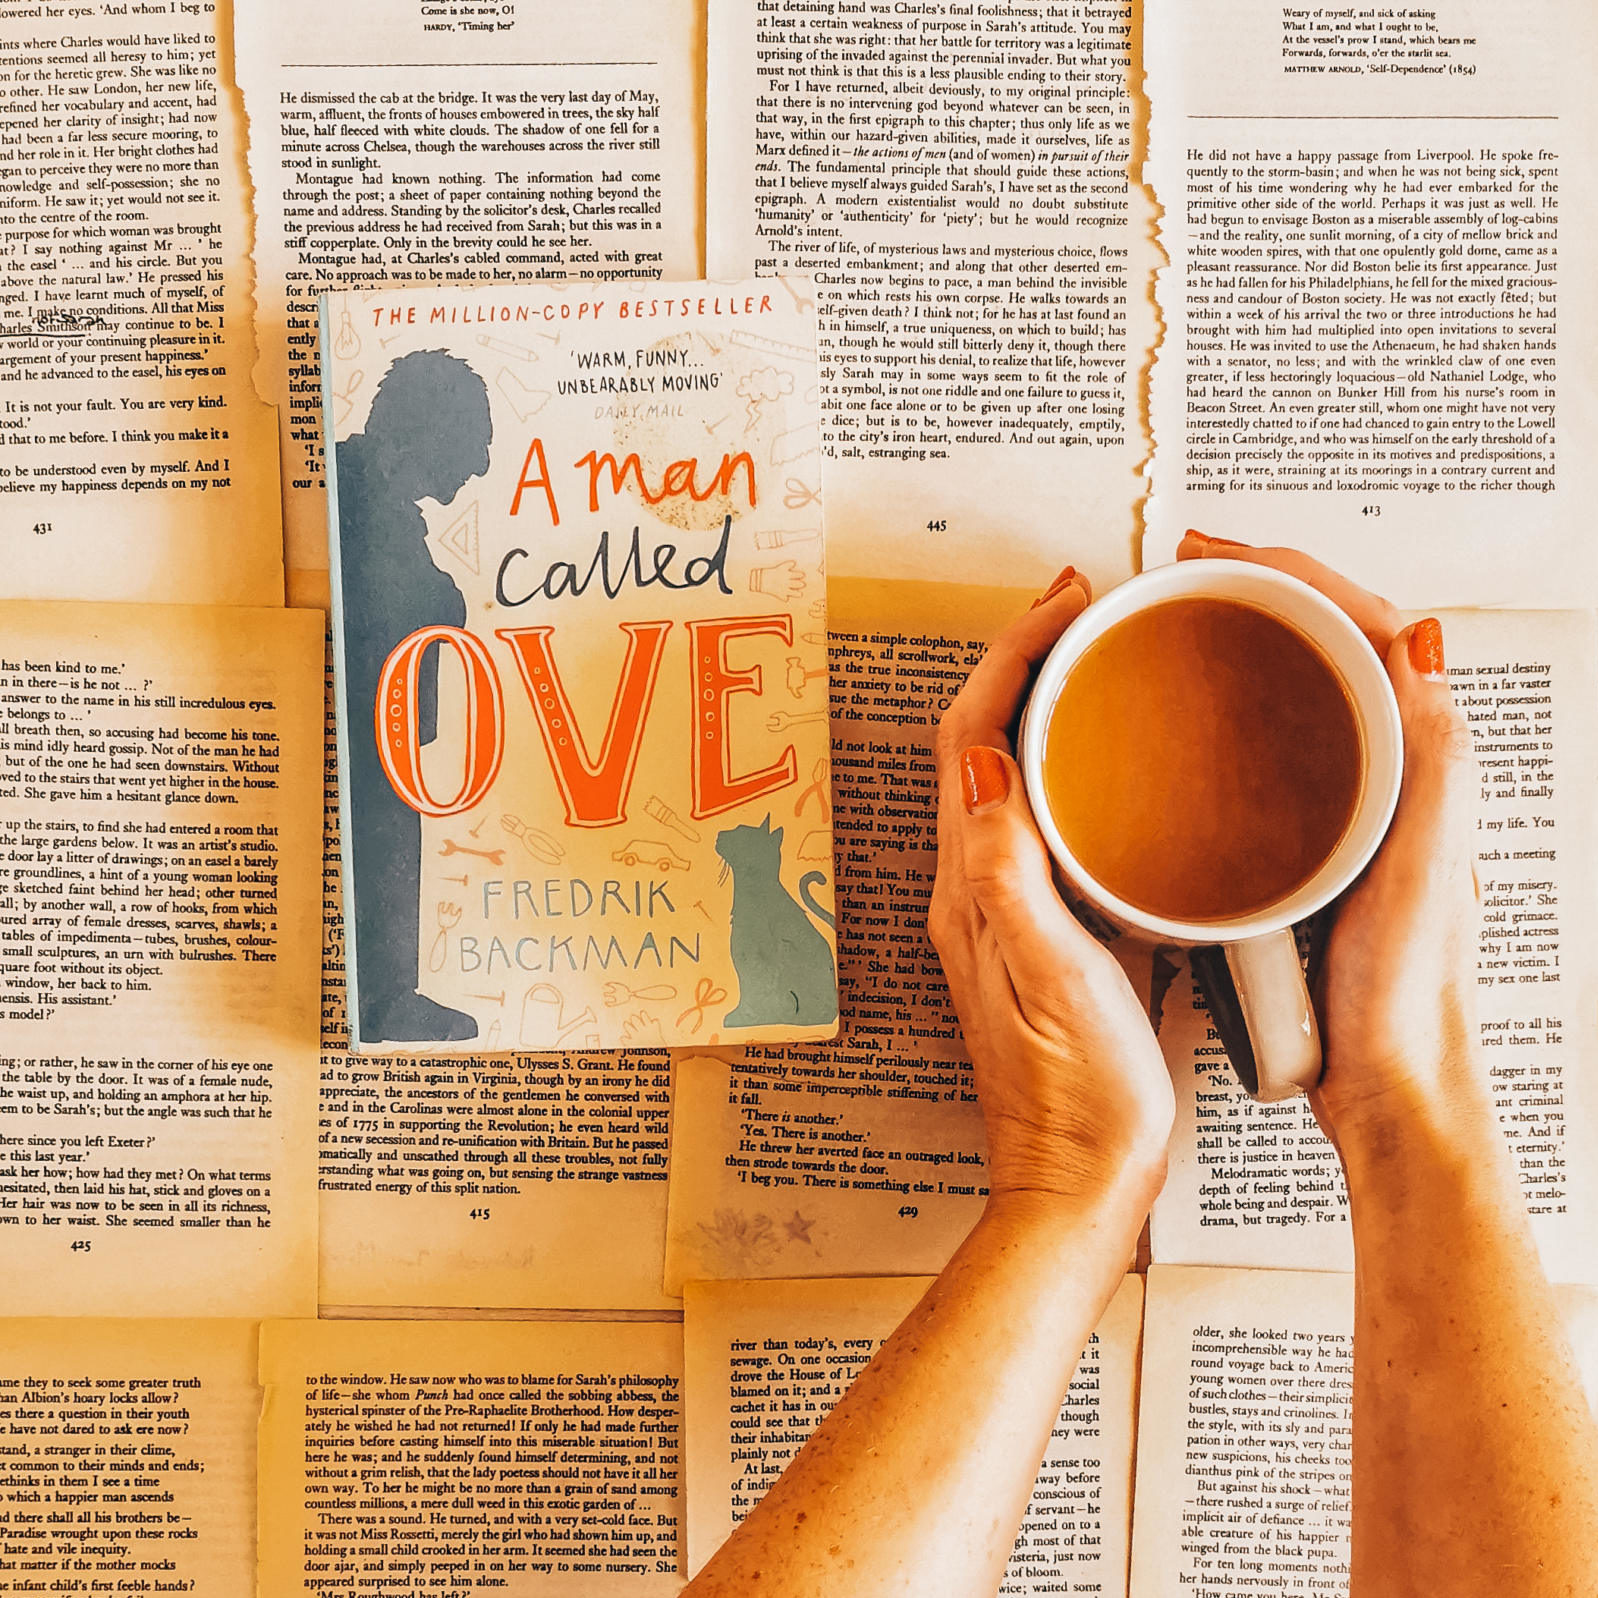 A Man Called Ove (Fredrik Backman)